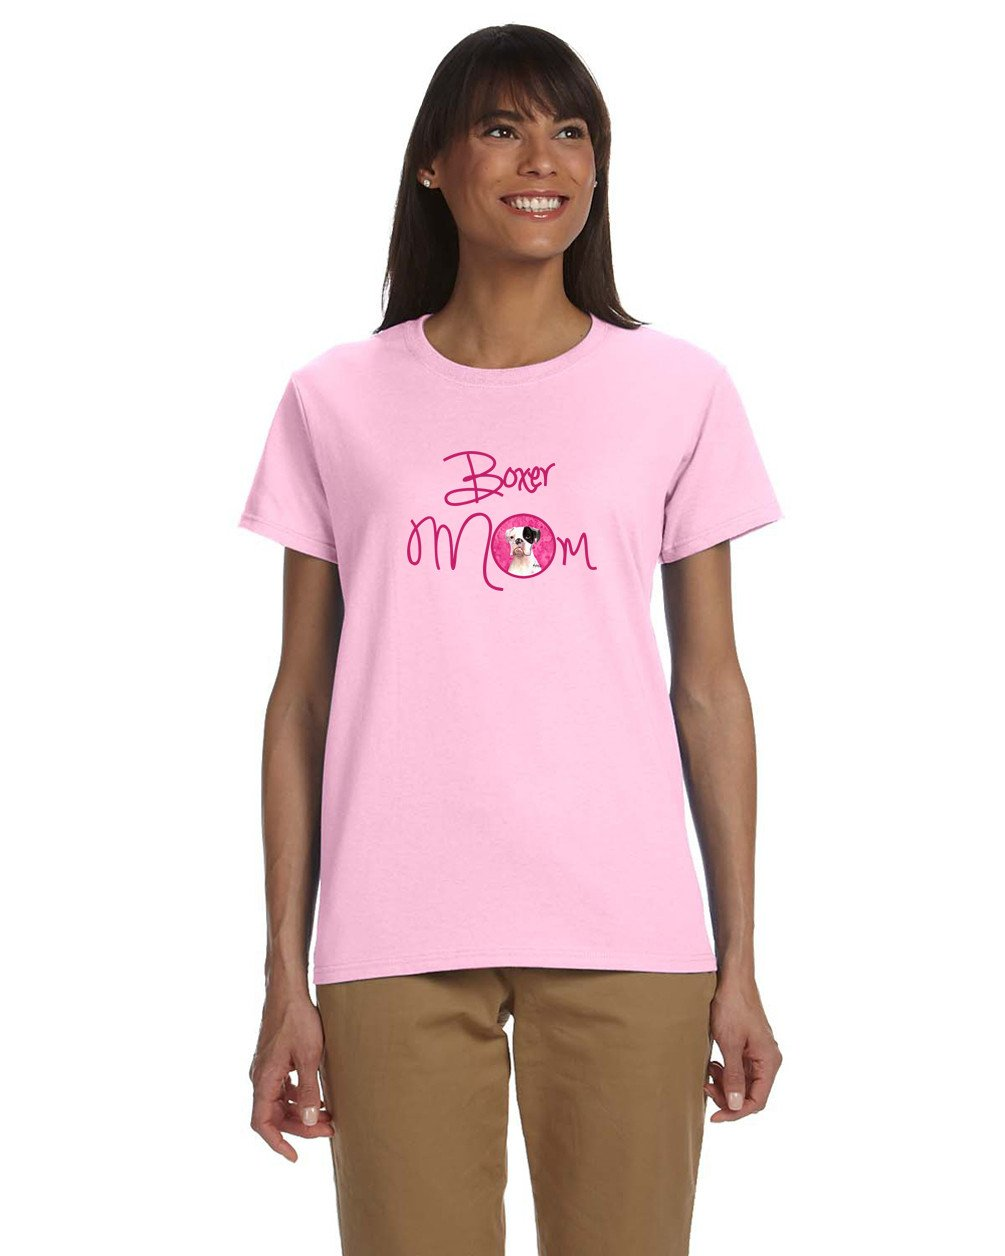 Buy this Pink Cooper the Boxer Mom T-shirt Ladies Cut Short Sleeve Small RDR3019PK-978-S